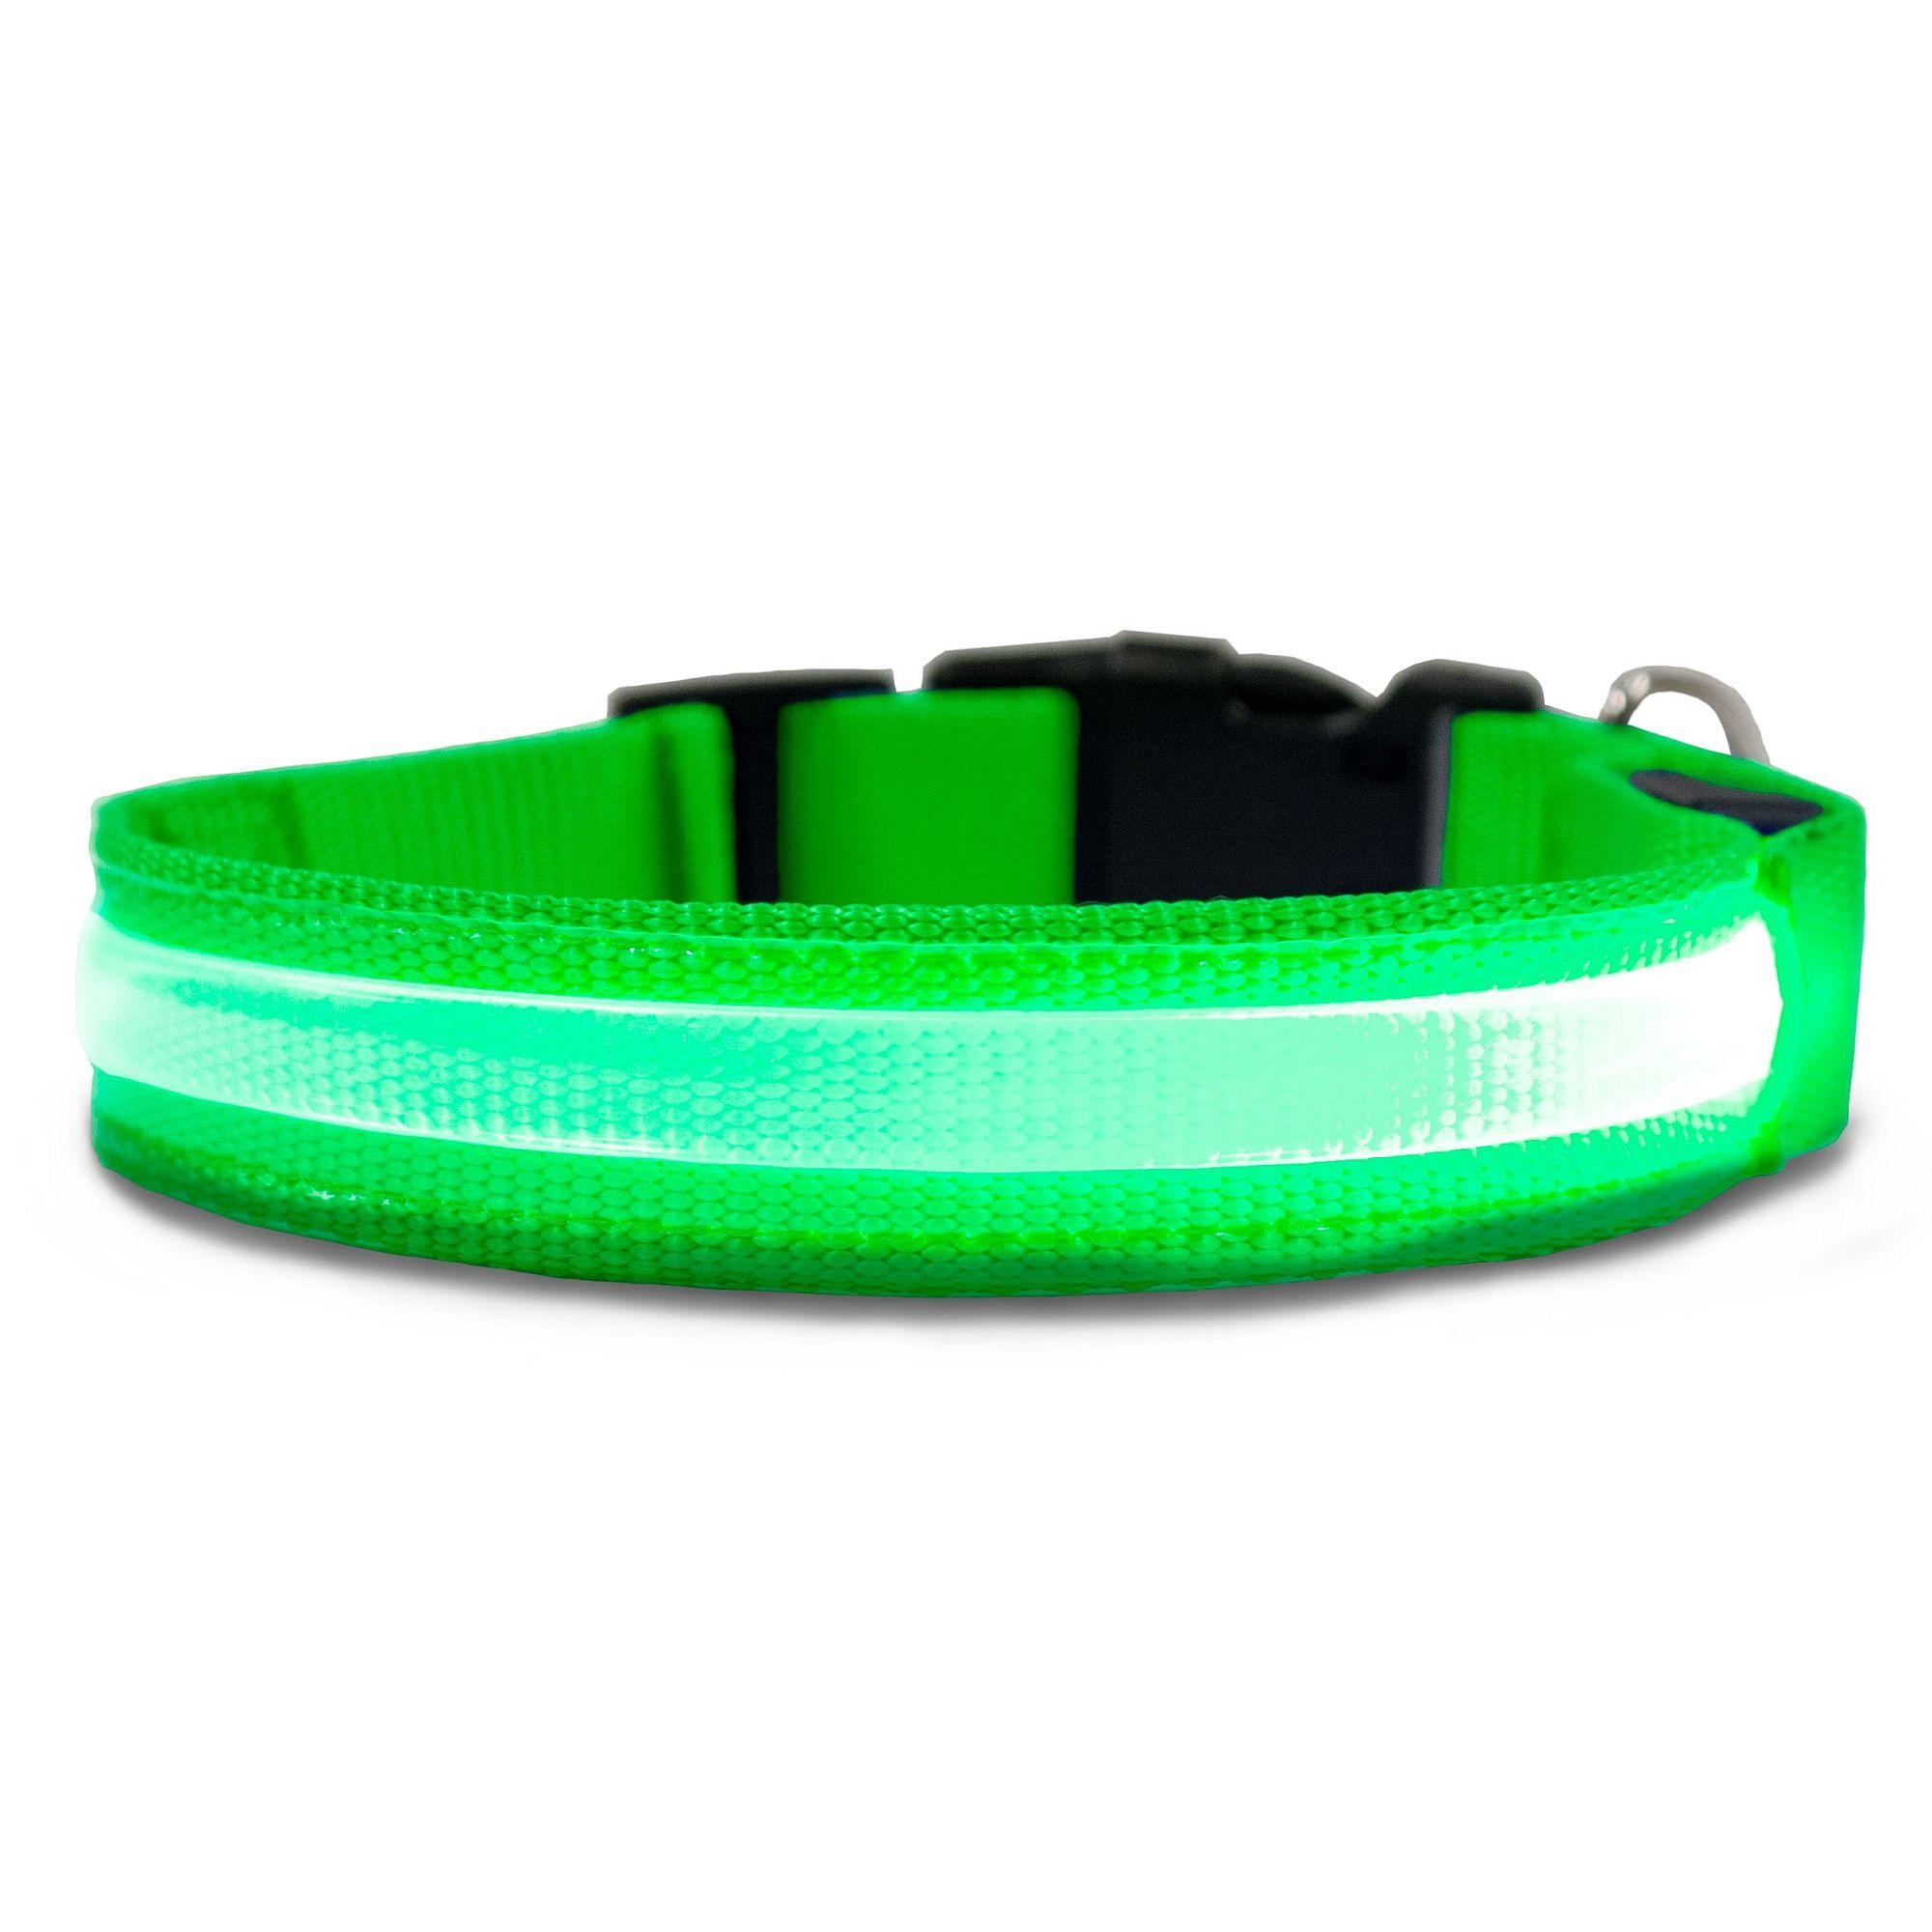 FurHaven LED Safety Pet Collar - Green